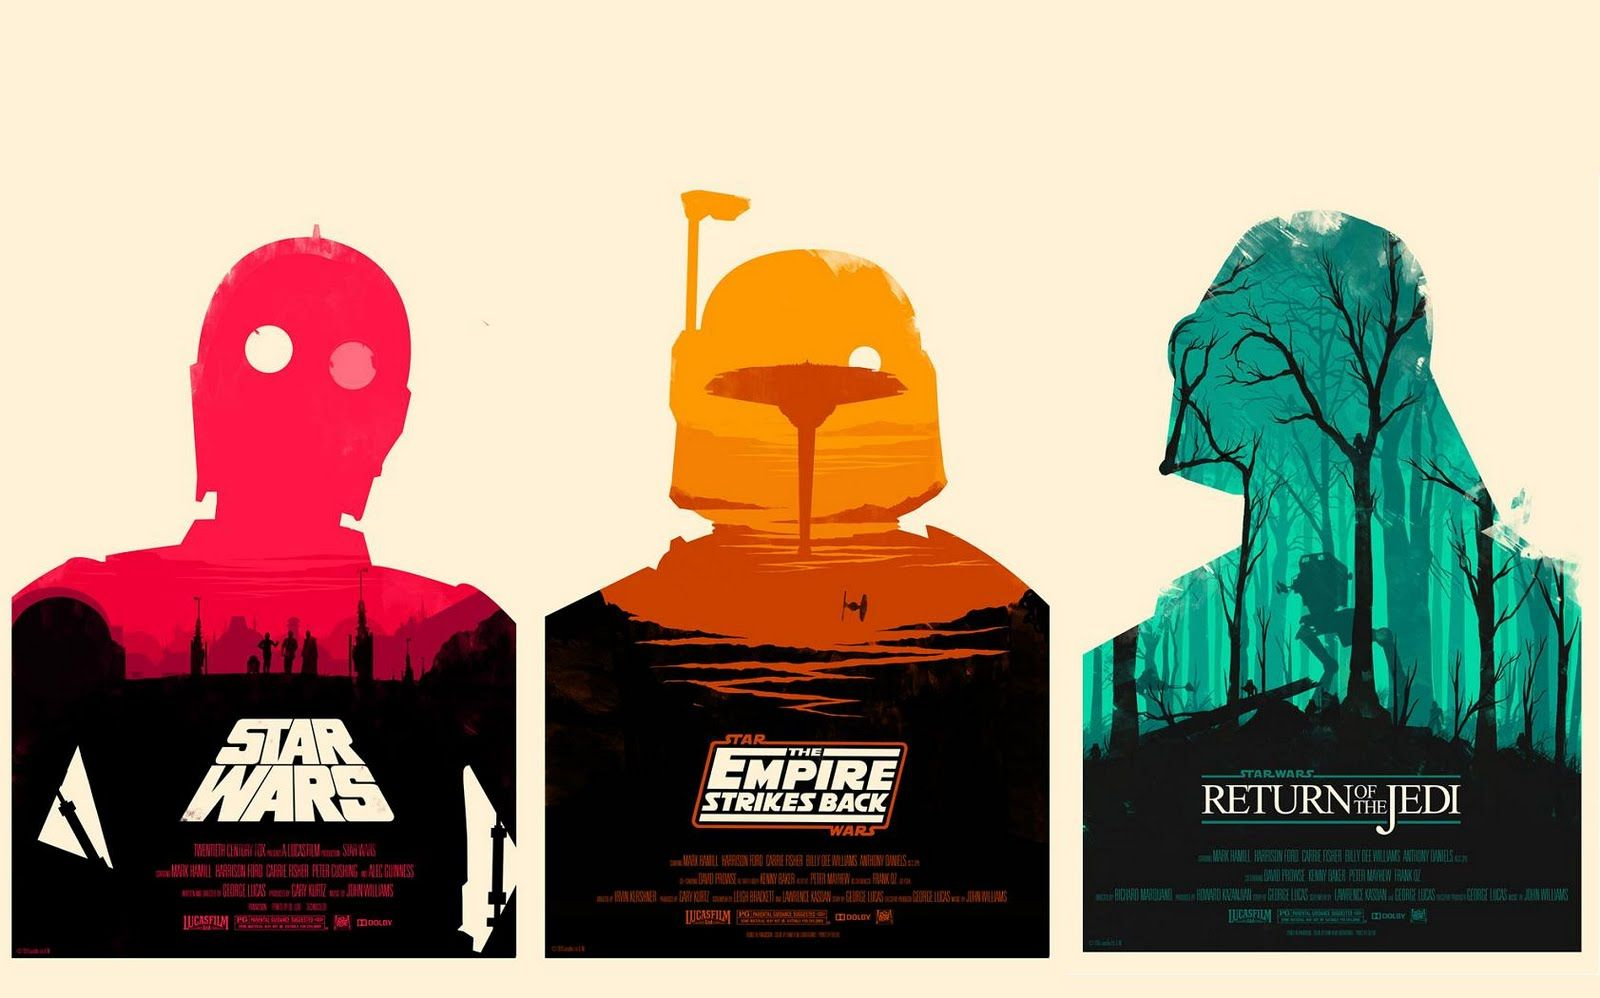 Super Punch Olly Moss S Star Wars Posters As A Wallpaper Star Wars Trilogy Poster Star Wars Poster Star Wars Movies Posters